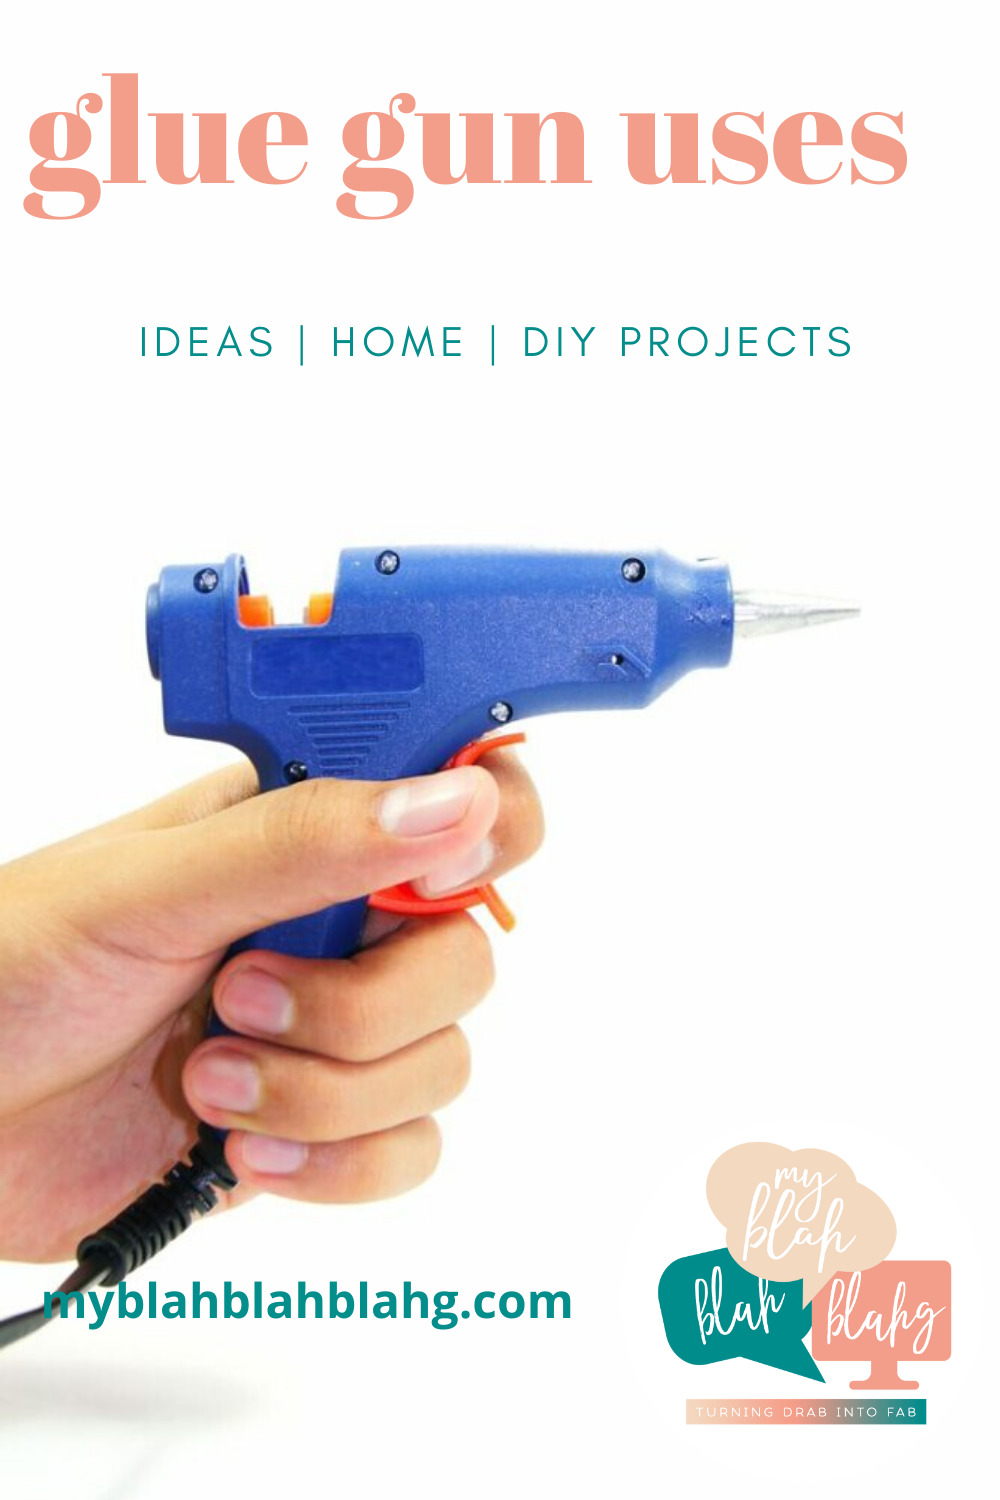 Glue gun uses that not everyone knows about. Do you only pull out your glue gun for crafts? Then you're missing out on the other things it can do for you! #myblahblahblahgblog #gluegunuses